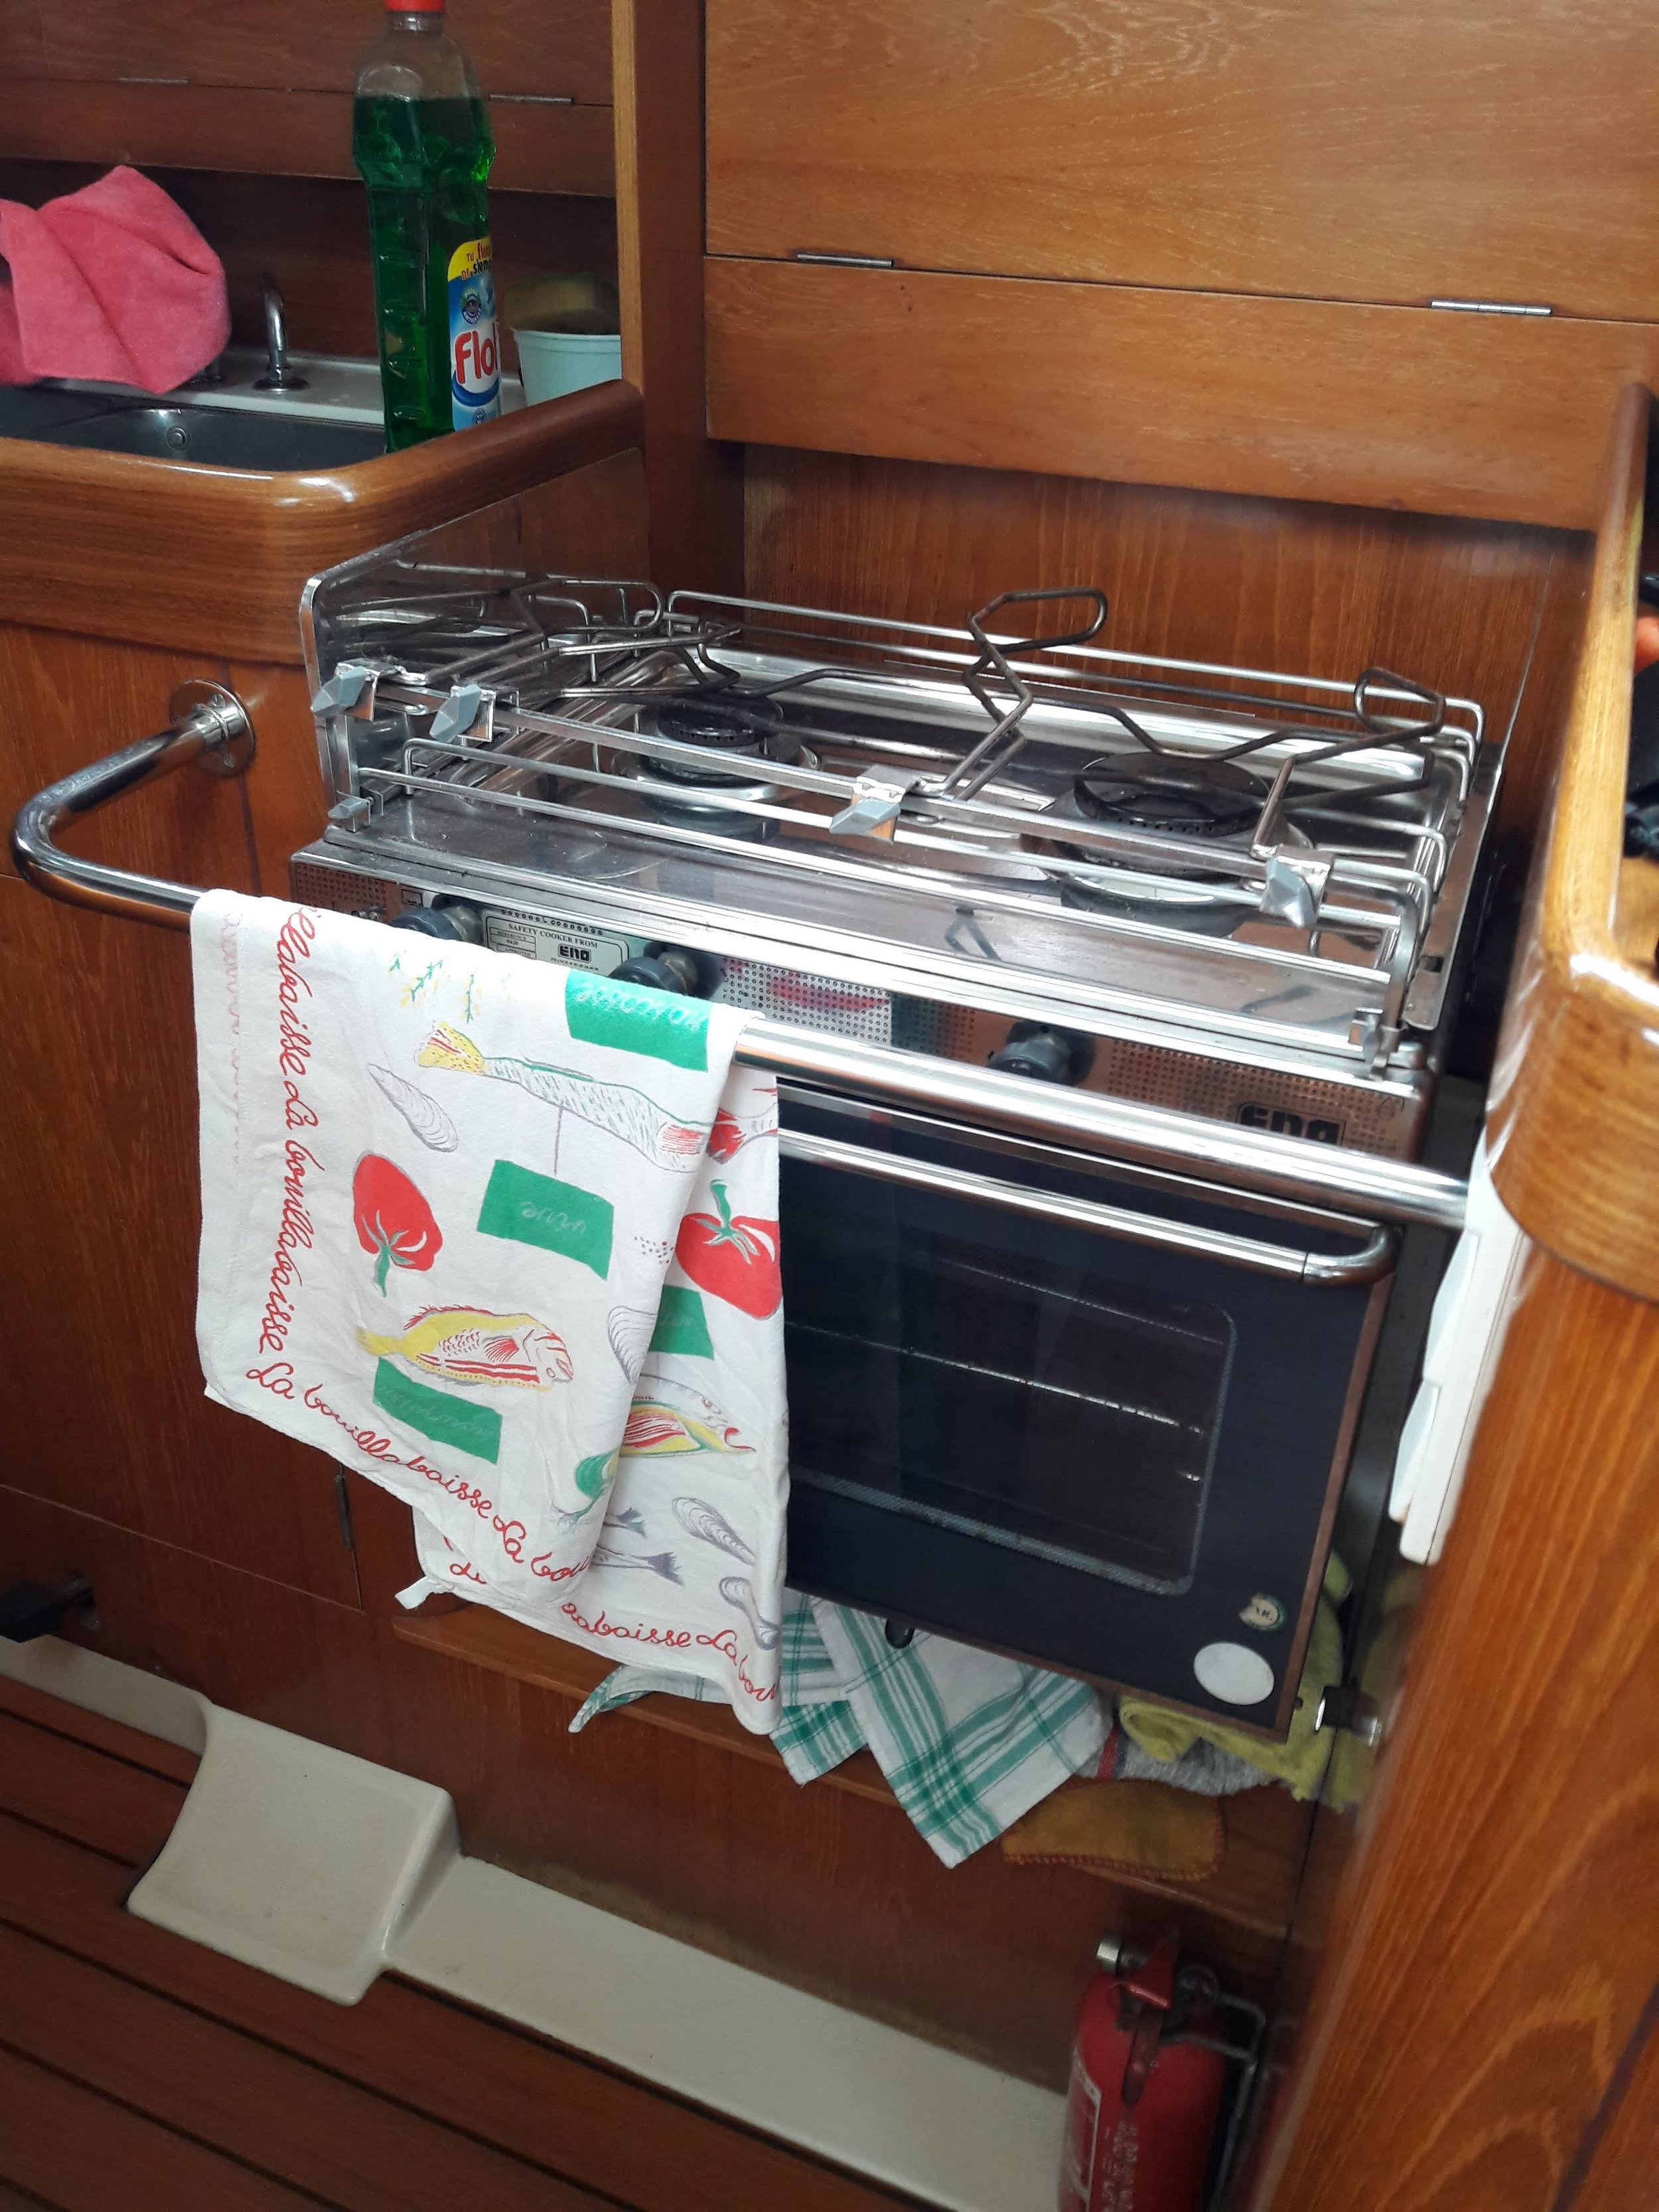 The stove is impressively built on a hinge to avoid danger with large waves.